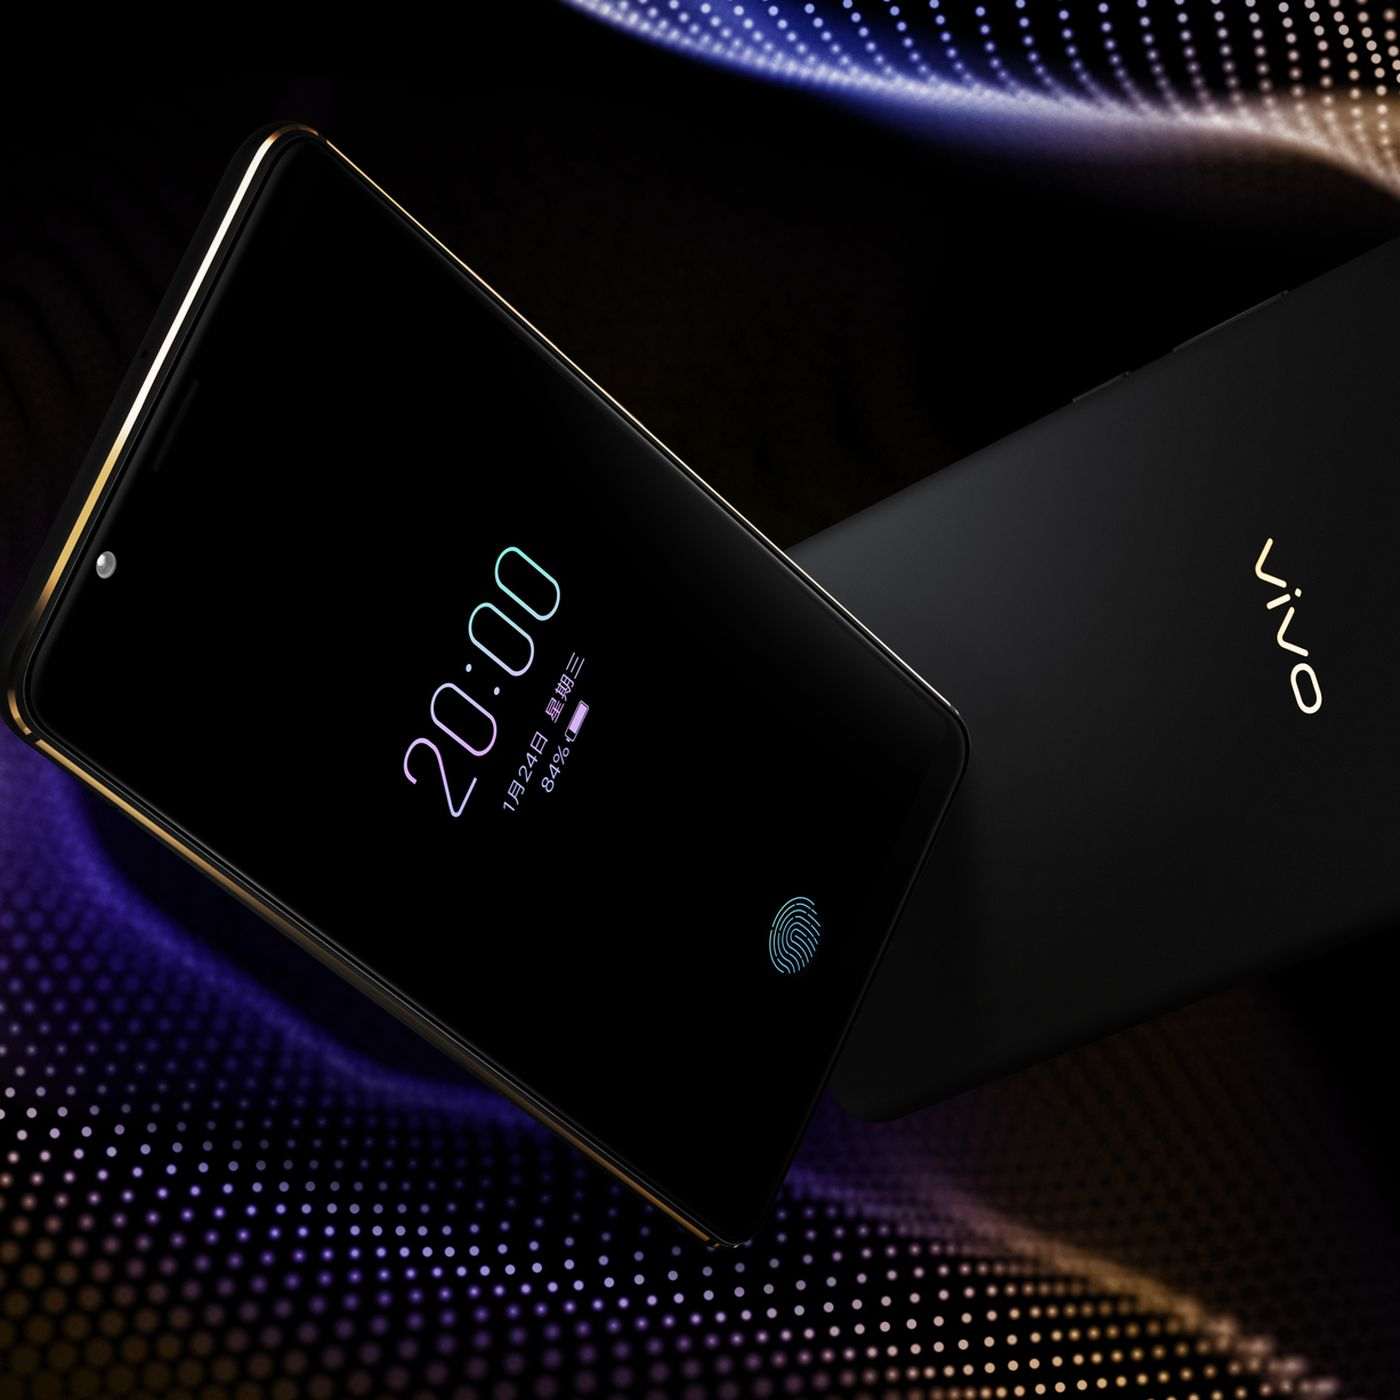 cd0c9ddd7 The world s first phone with an in-display fingerprint sensor is here